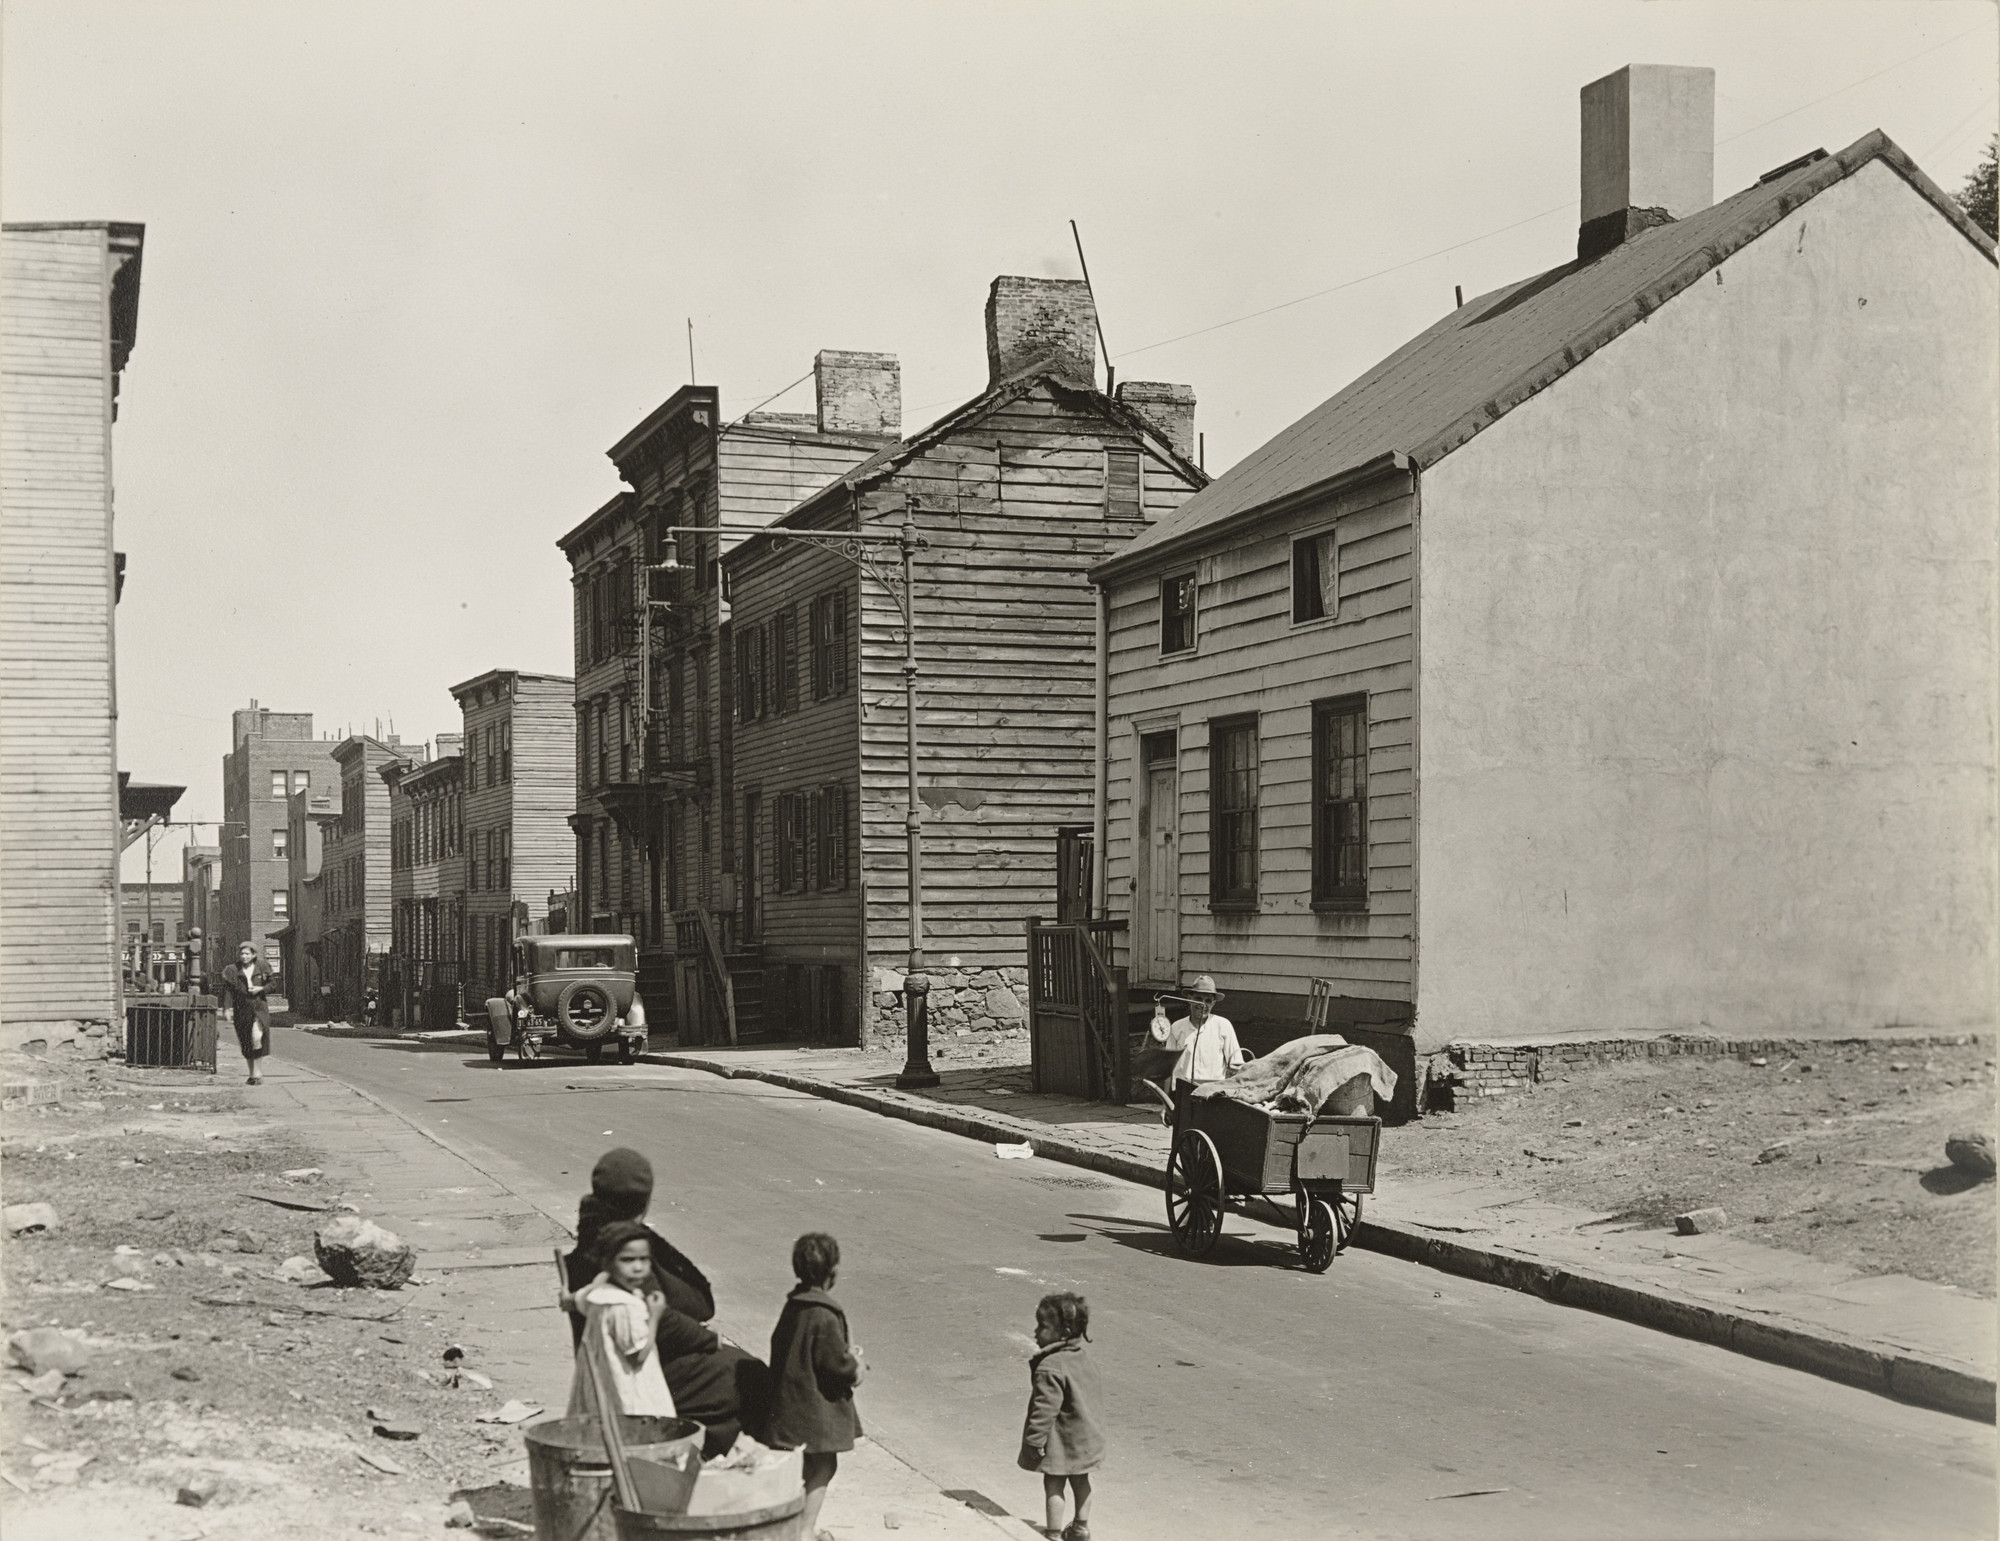 Berenice Abbott. Talman Street between Jay and Bridge Streets, Brooklyn. May 22, 1936